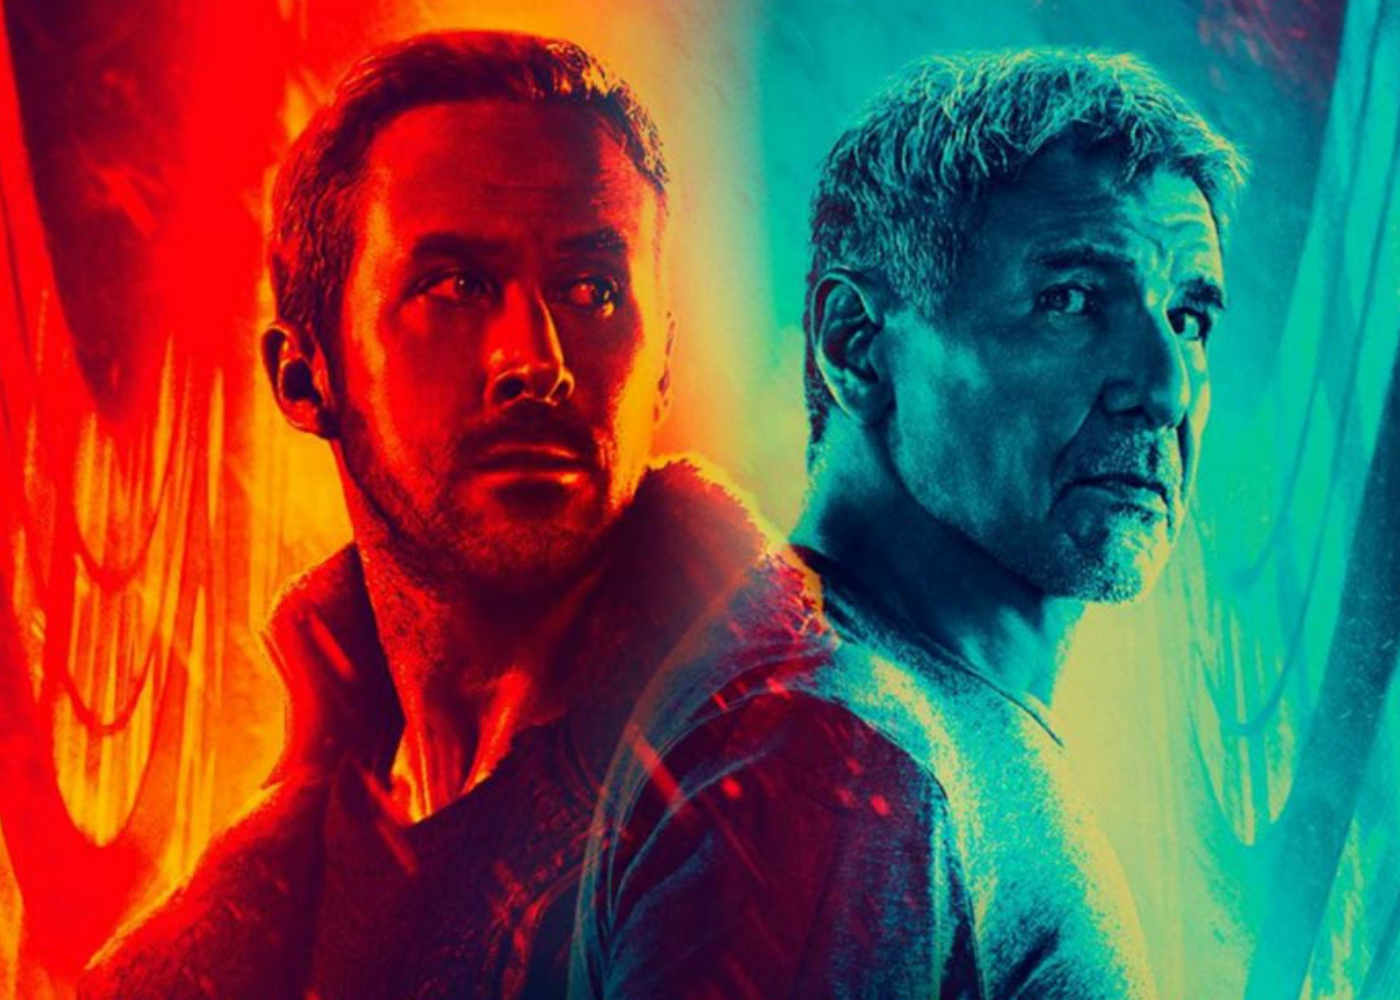 Get Your Cushions Ready, Blade Runner 2049 Runtime Revealed